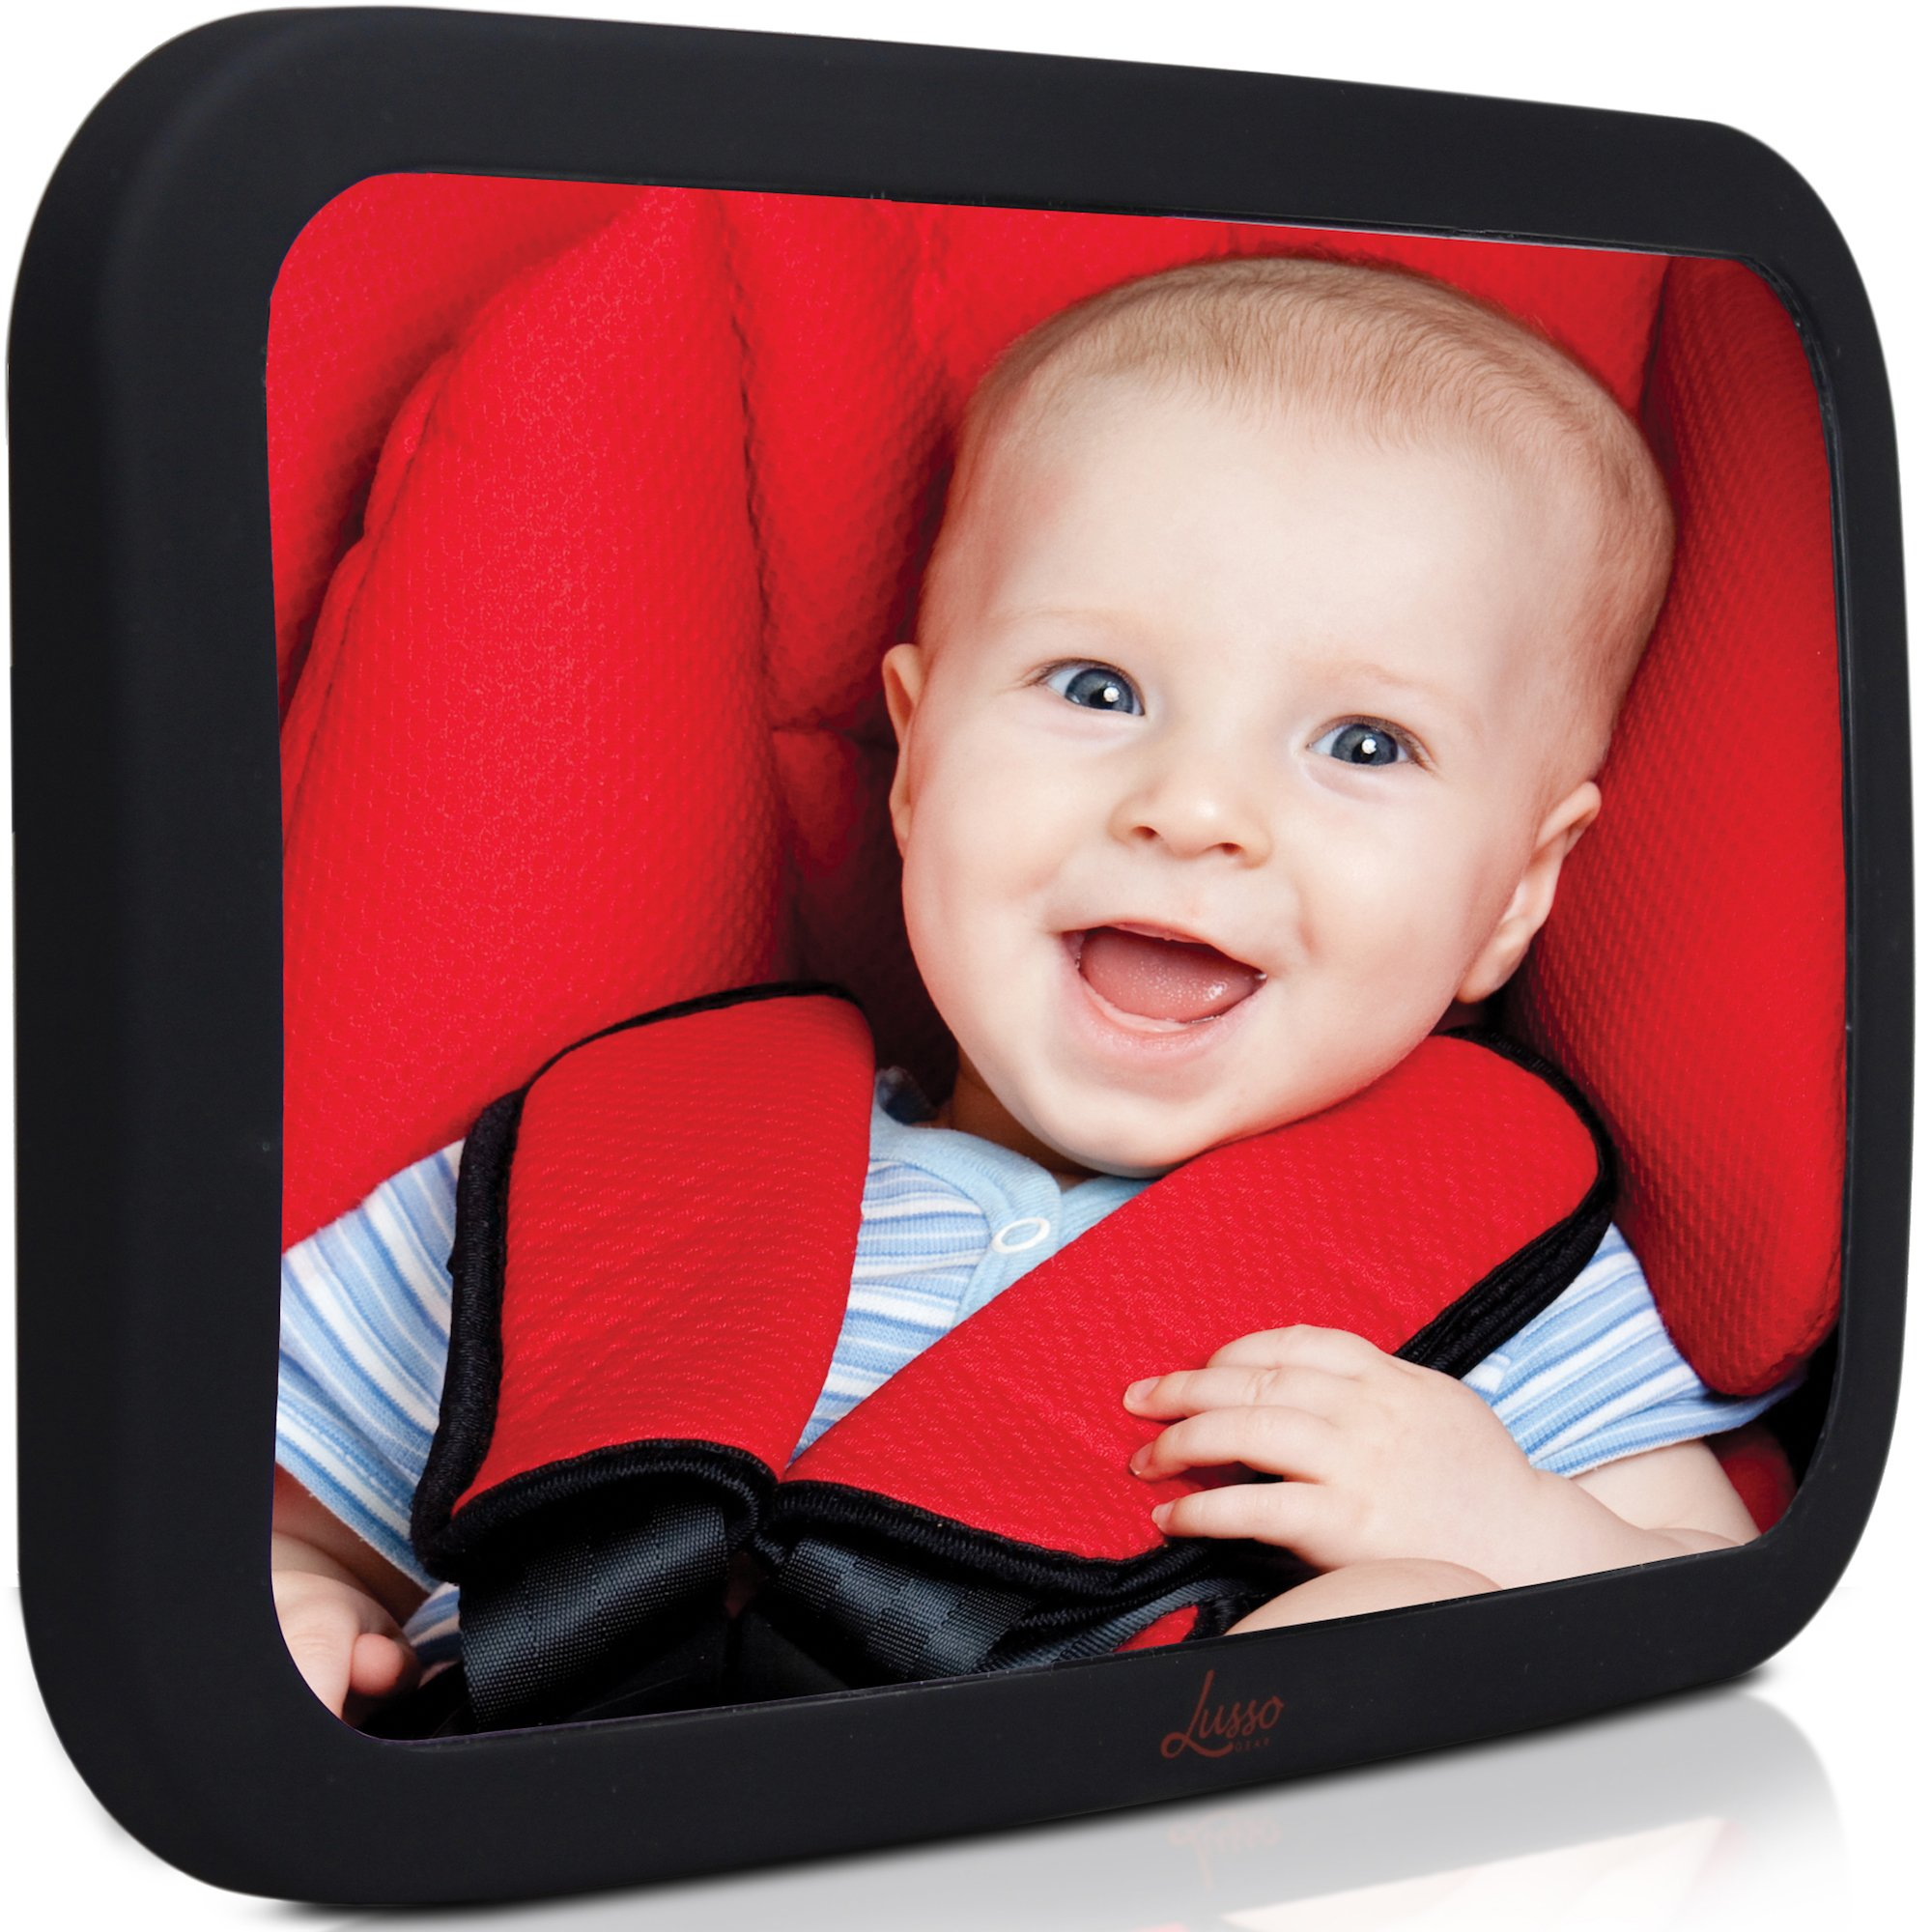 Cheap Forward Facing Car Seat Find Forward Facing Car Seat Deals On Line At Alibaba Com